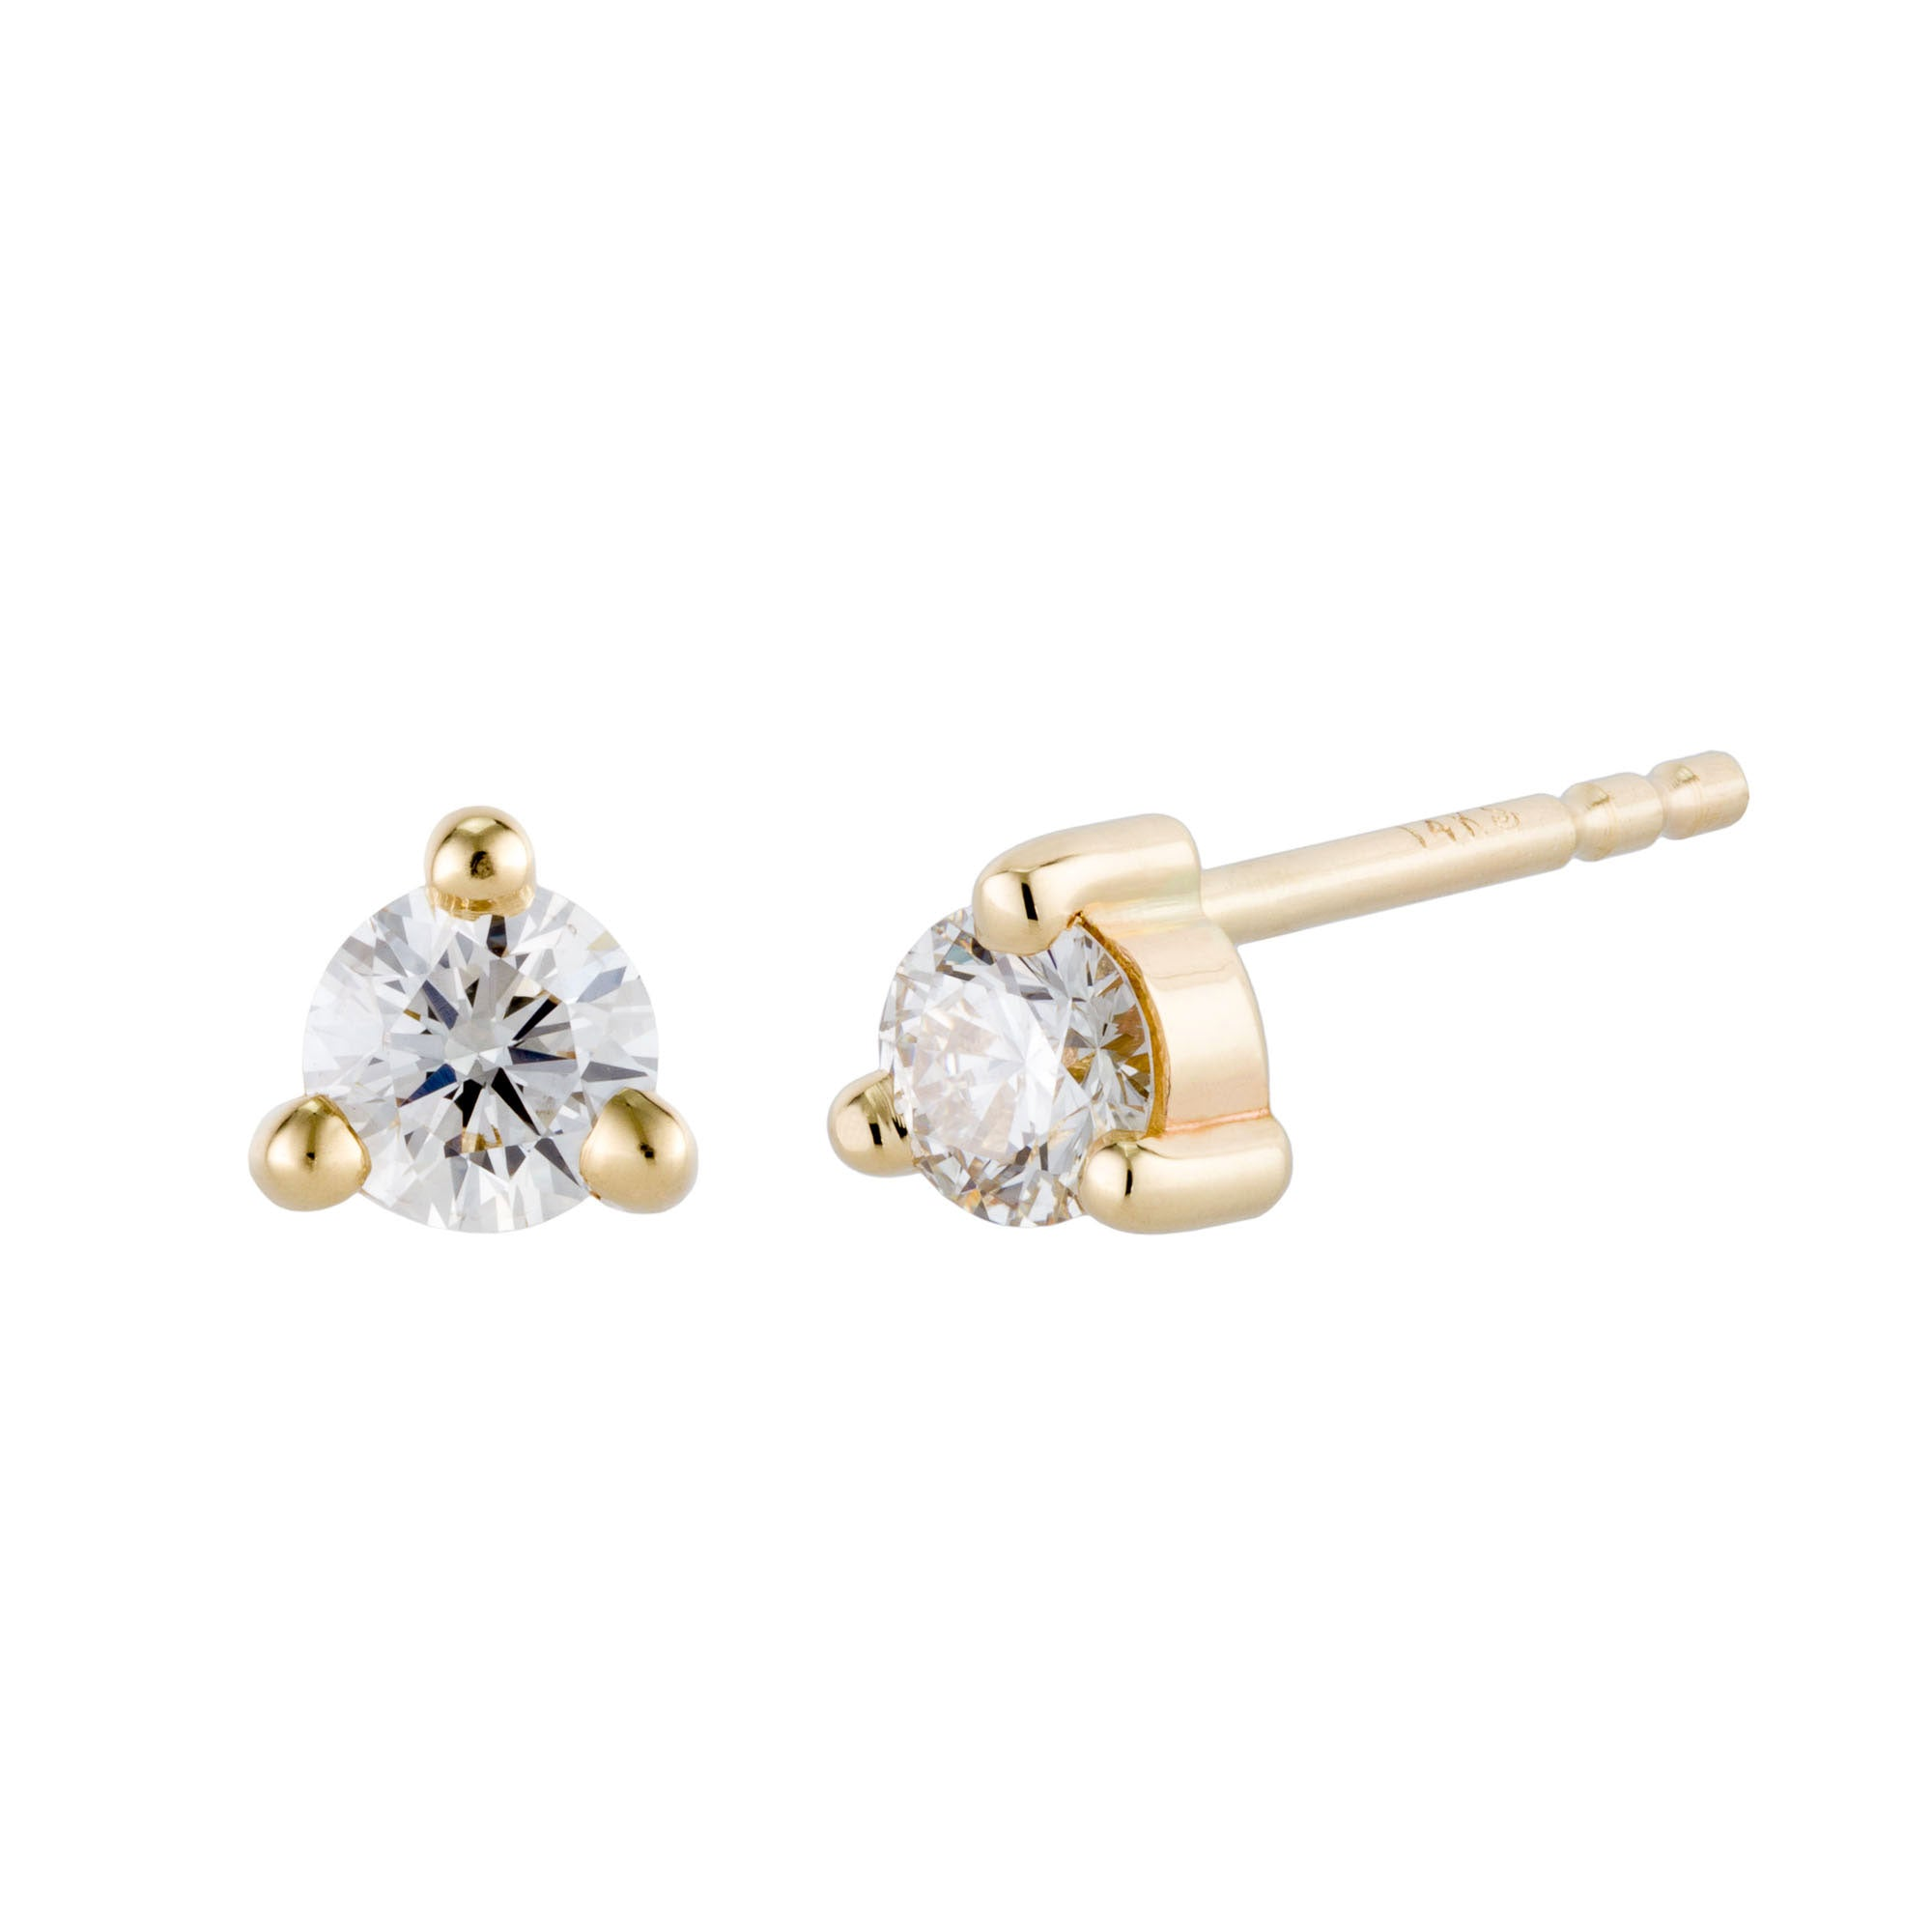 Product shot of 14K Small Diamond Studs in yellow gold